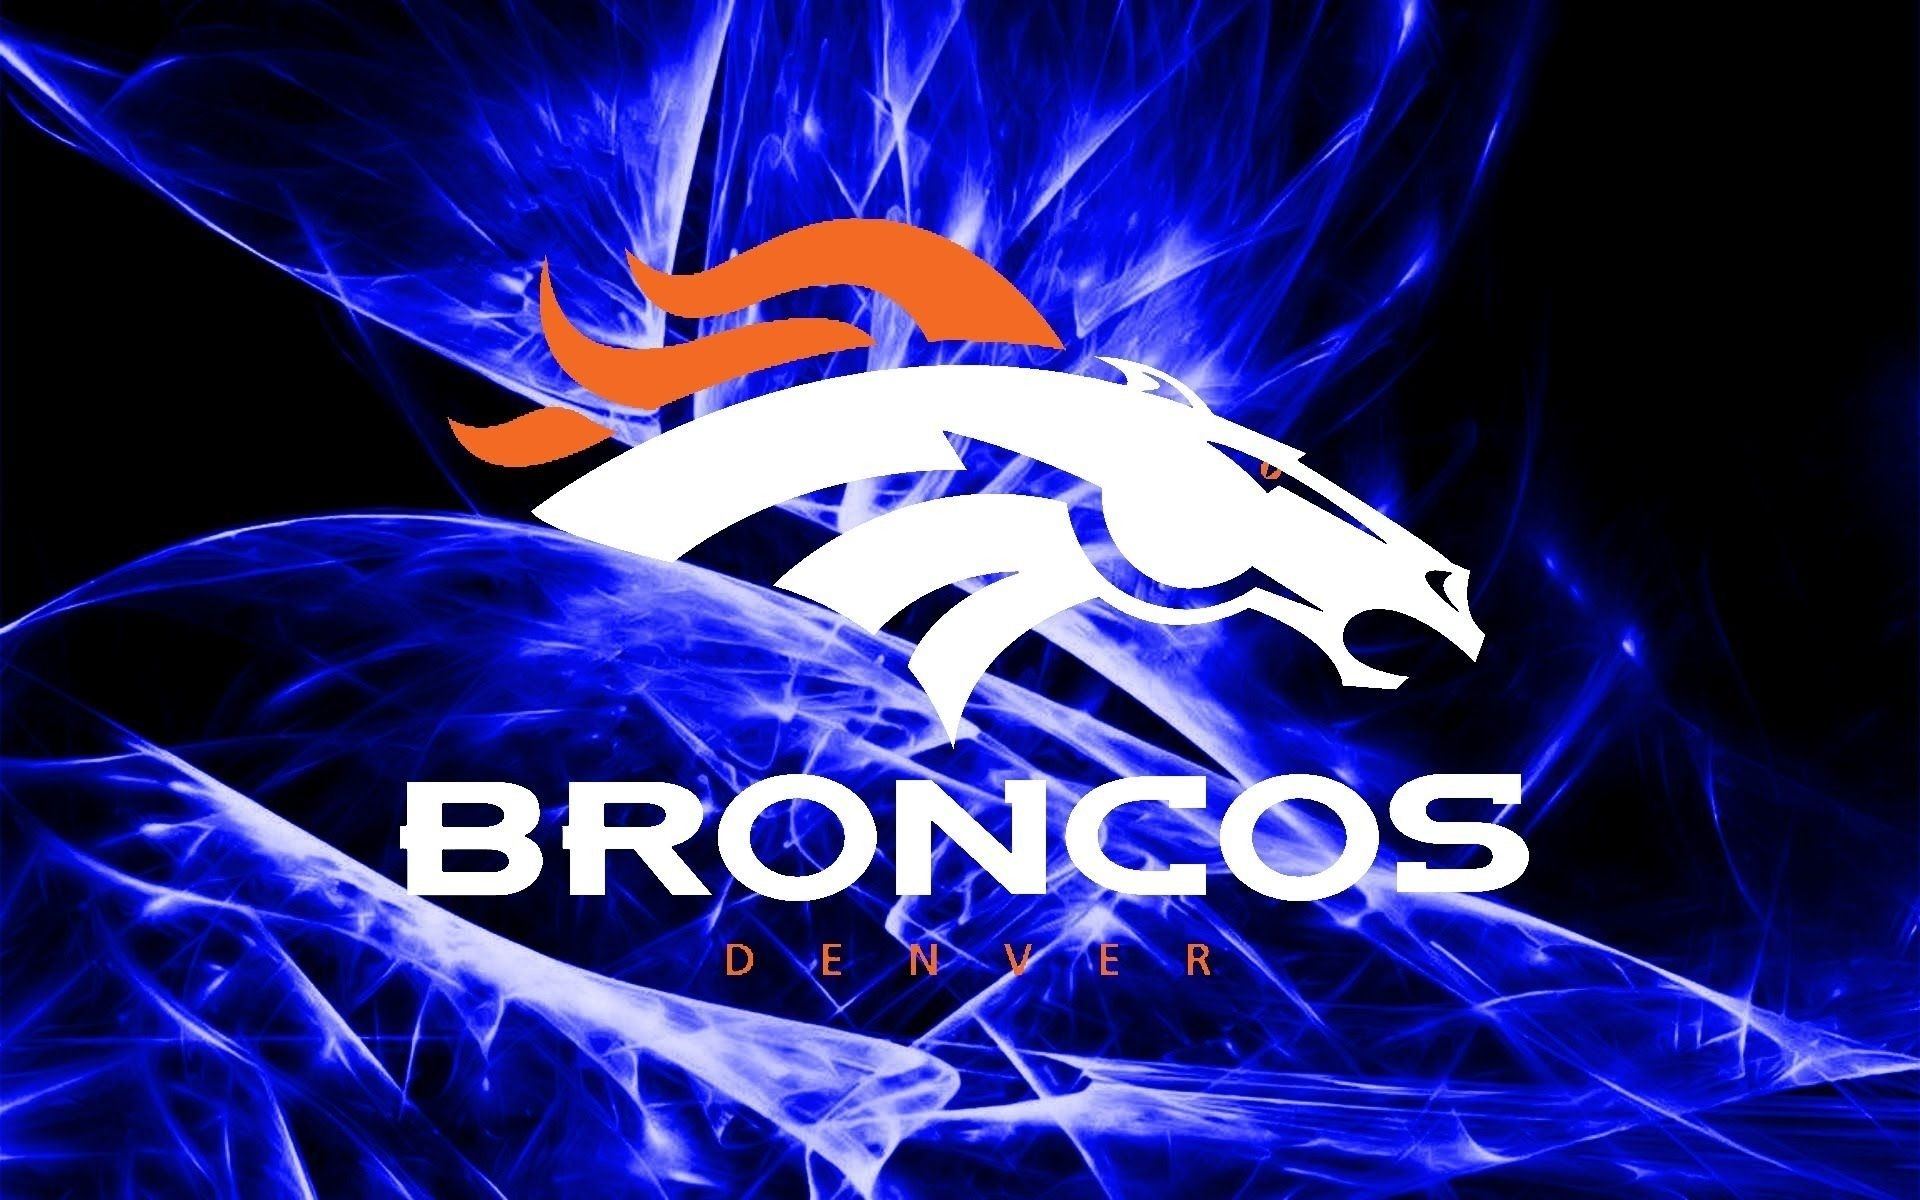 denver broncos wallpaper screensavers (69+ images)